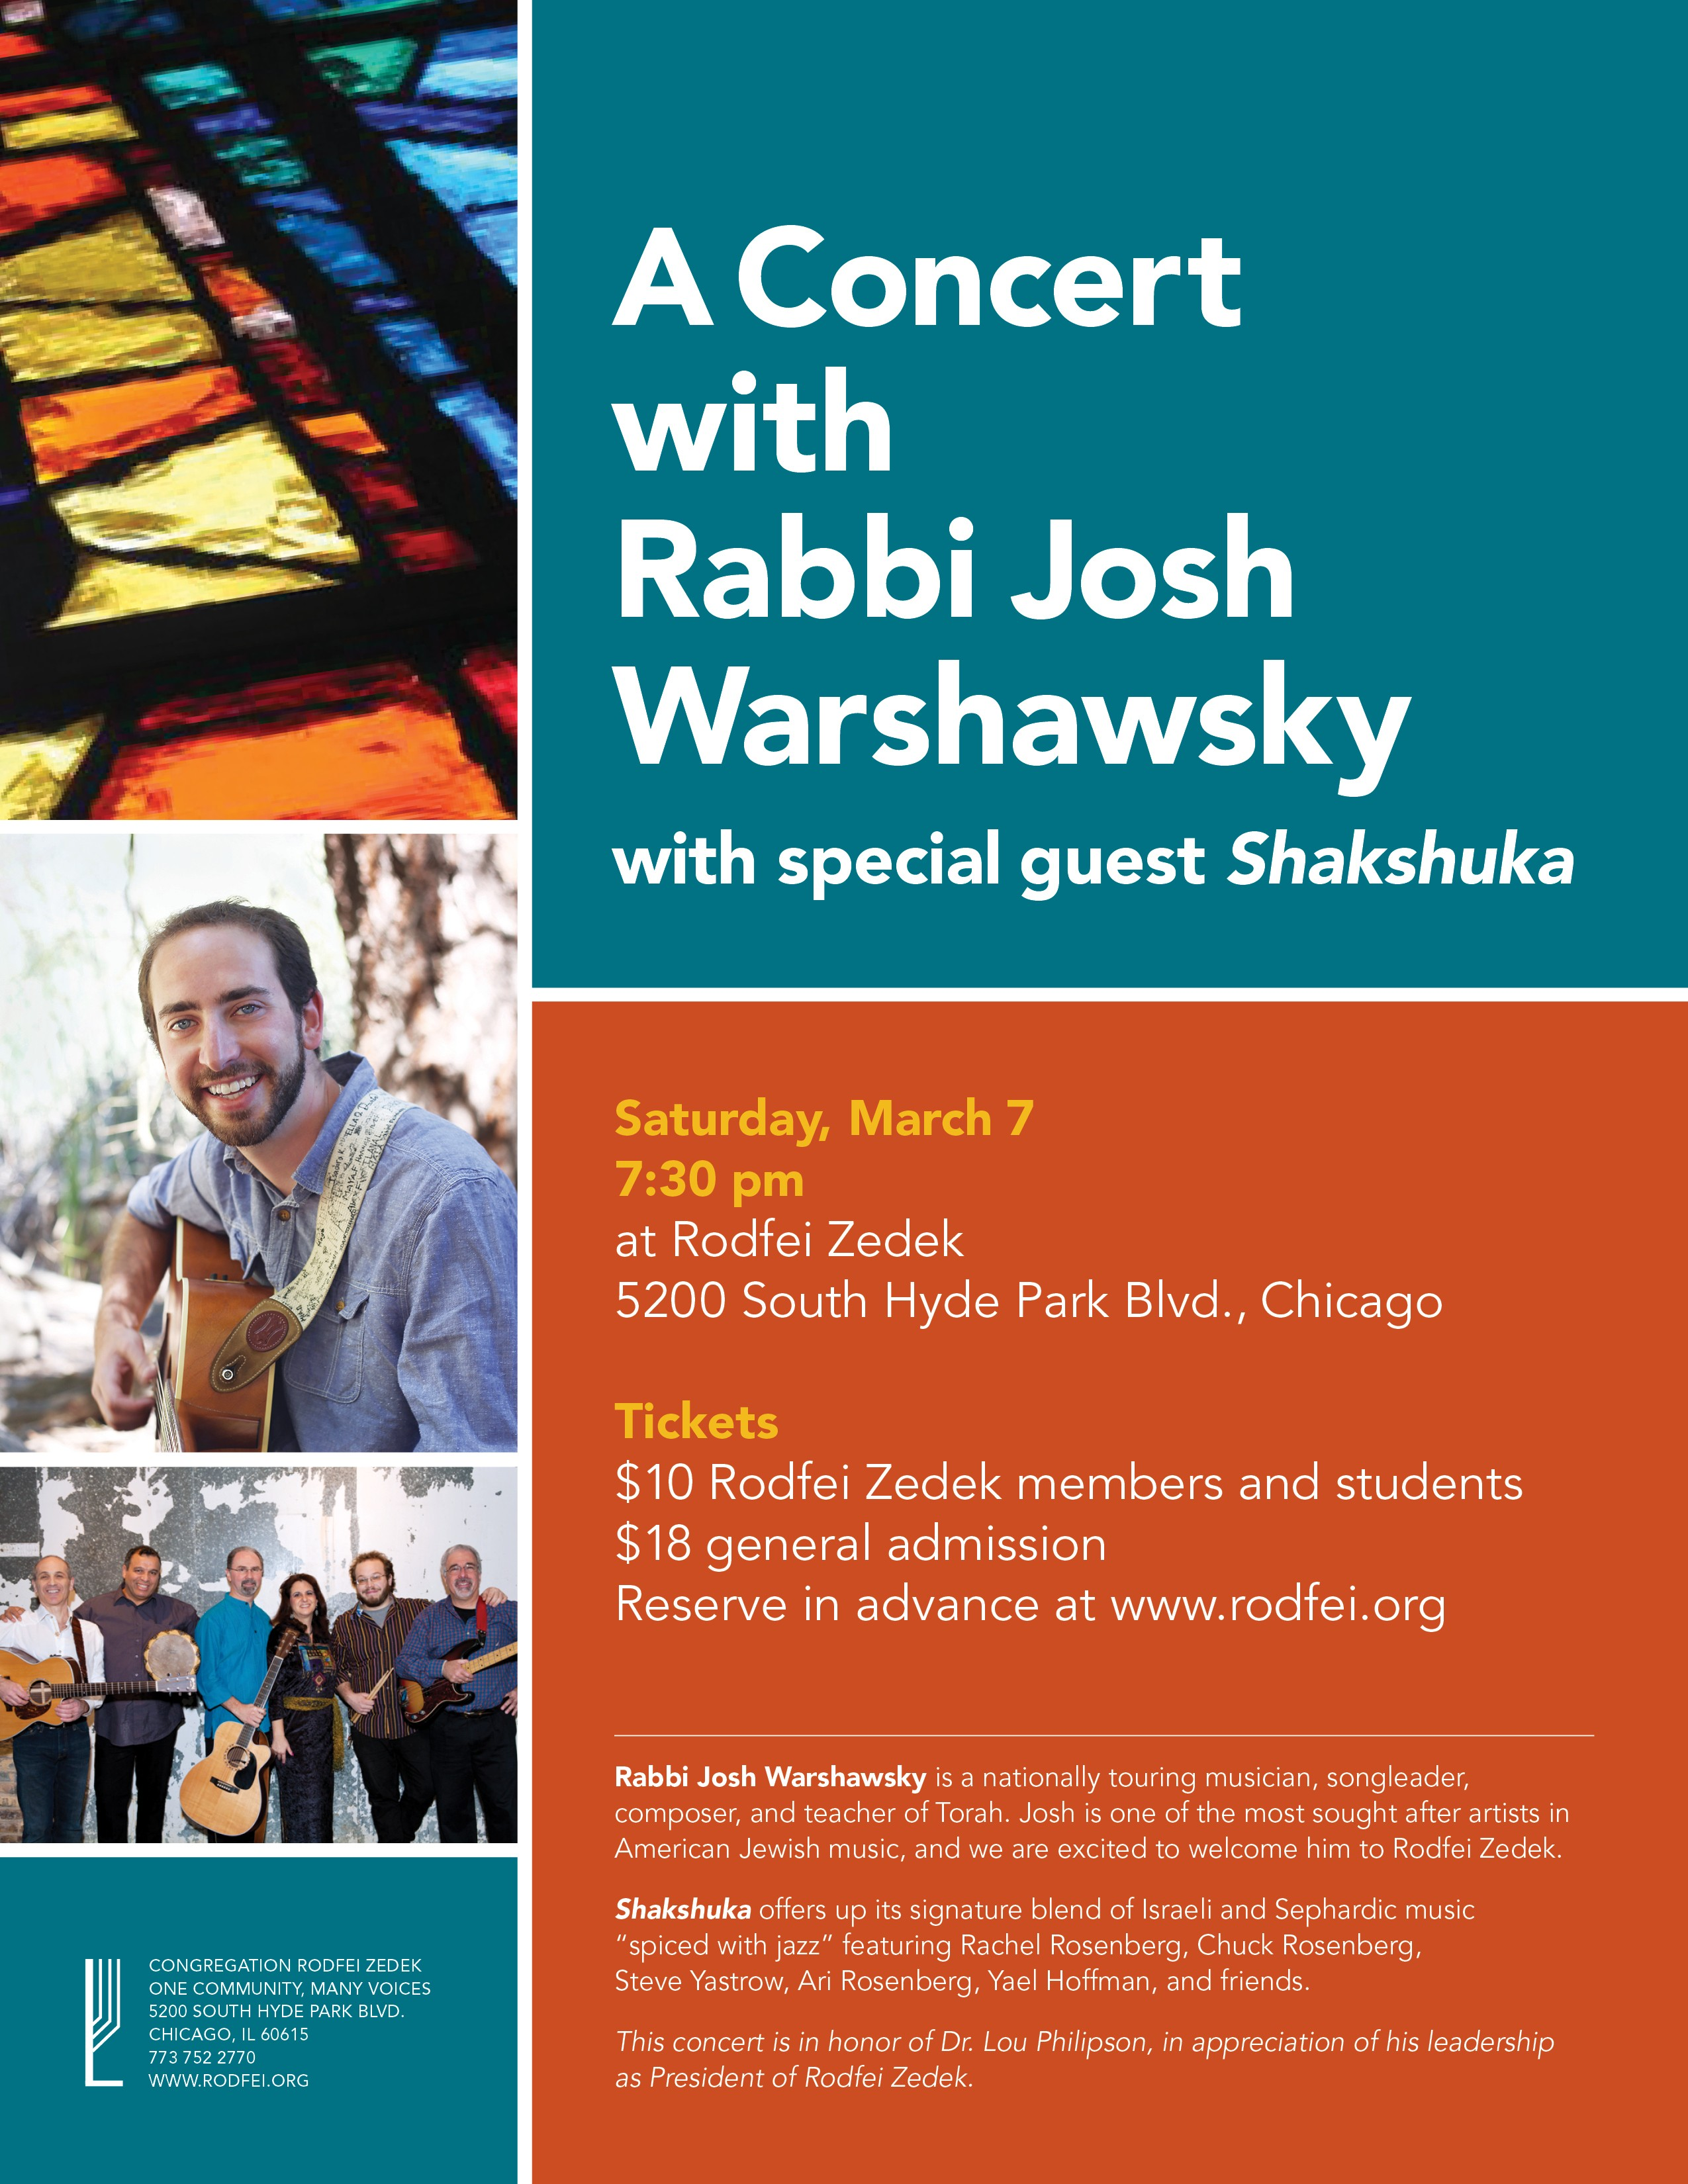 Concert flyer and ticket purchase link